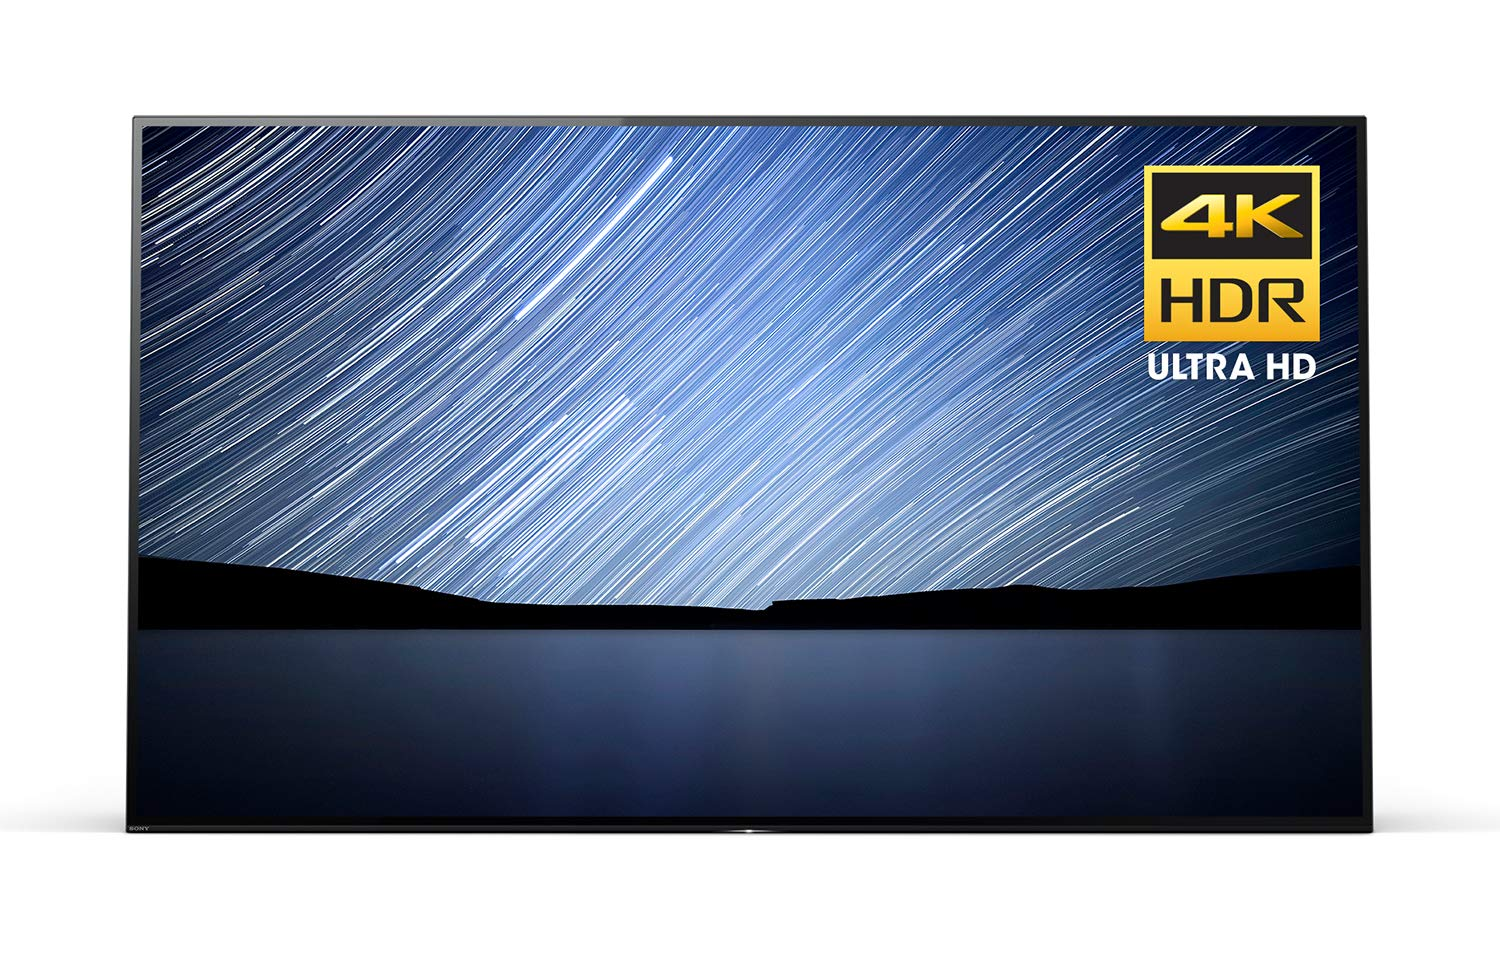 Sony BRAVIA A1 4K TV Black Friday Deals 2020